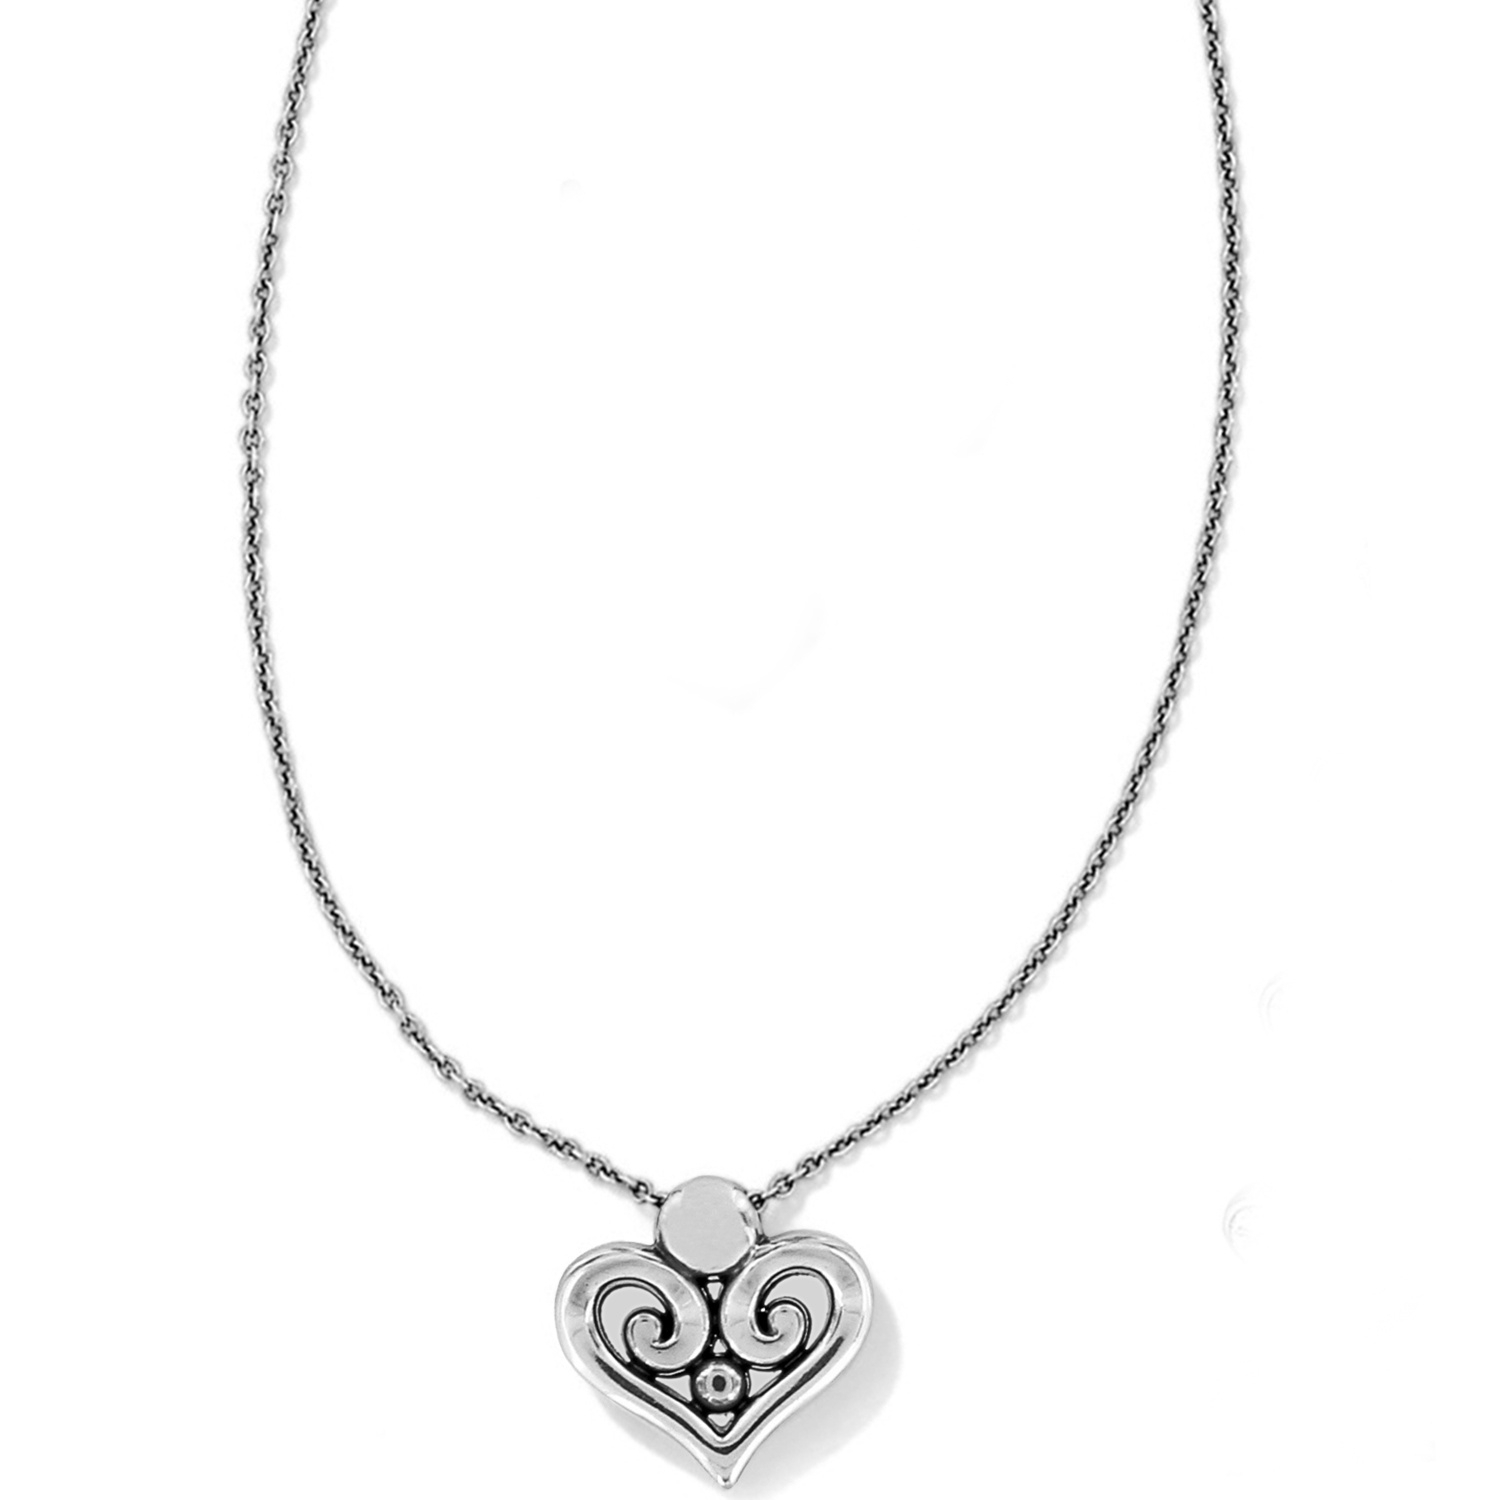 Alcazar Heart Necklace With Regard To Newest Joined Hearts Necklaces (View 14 of 25)